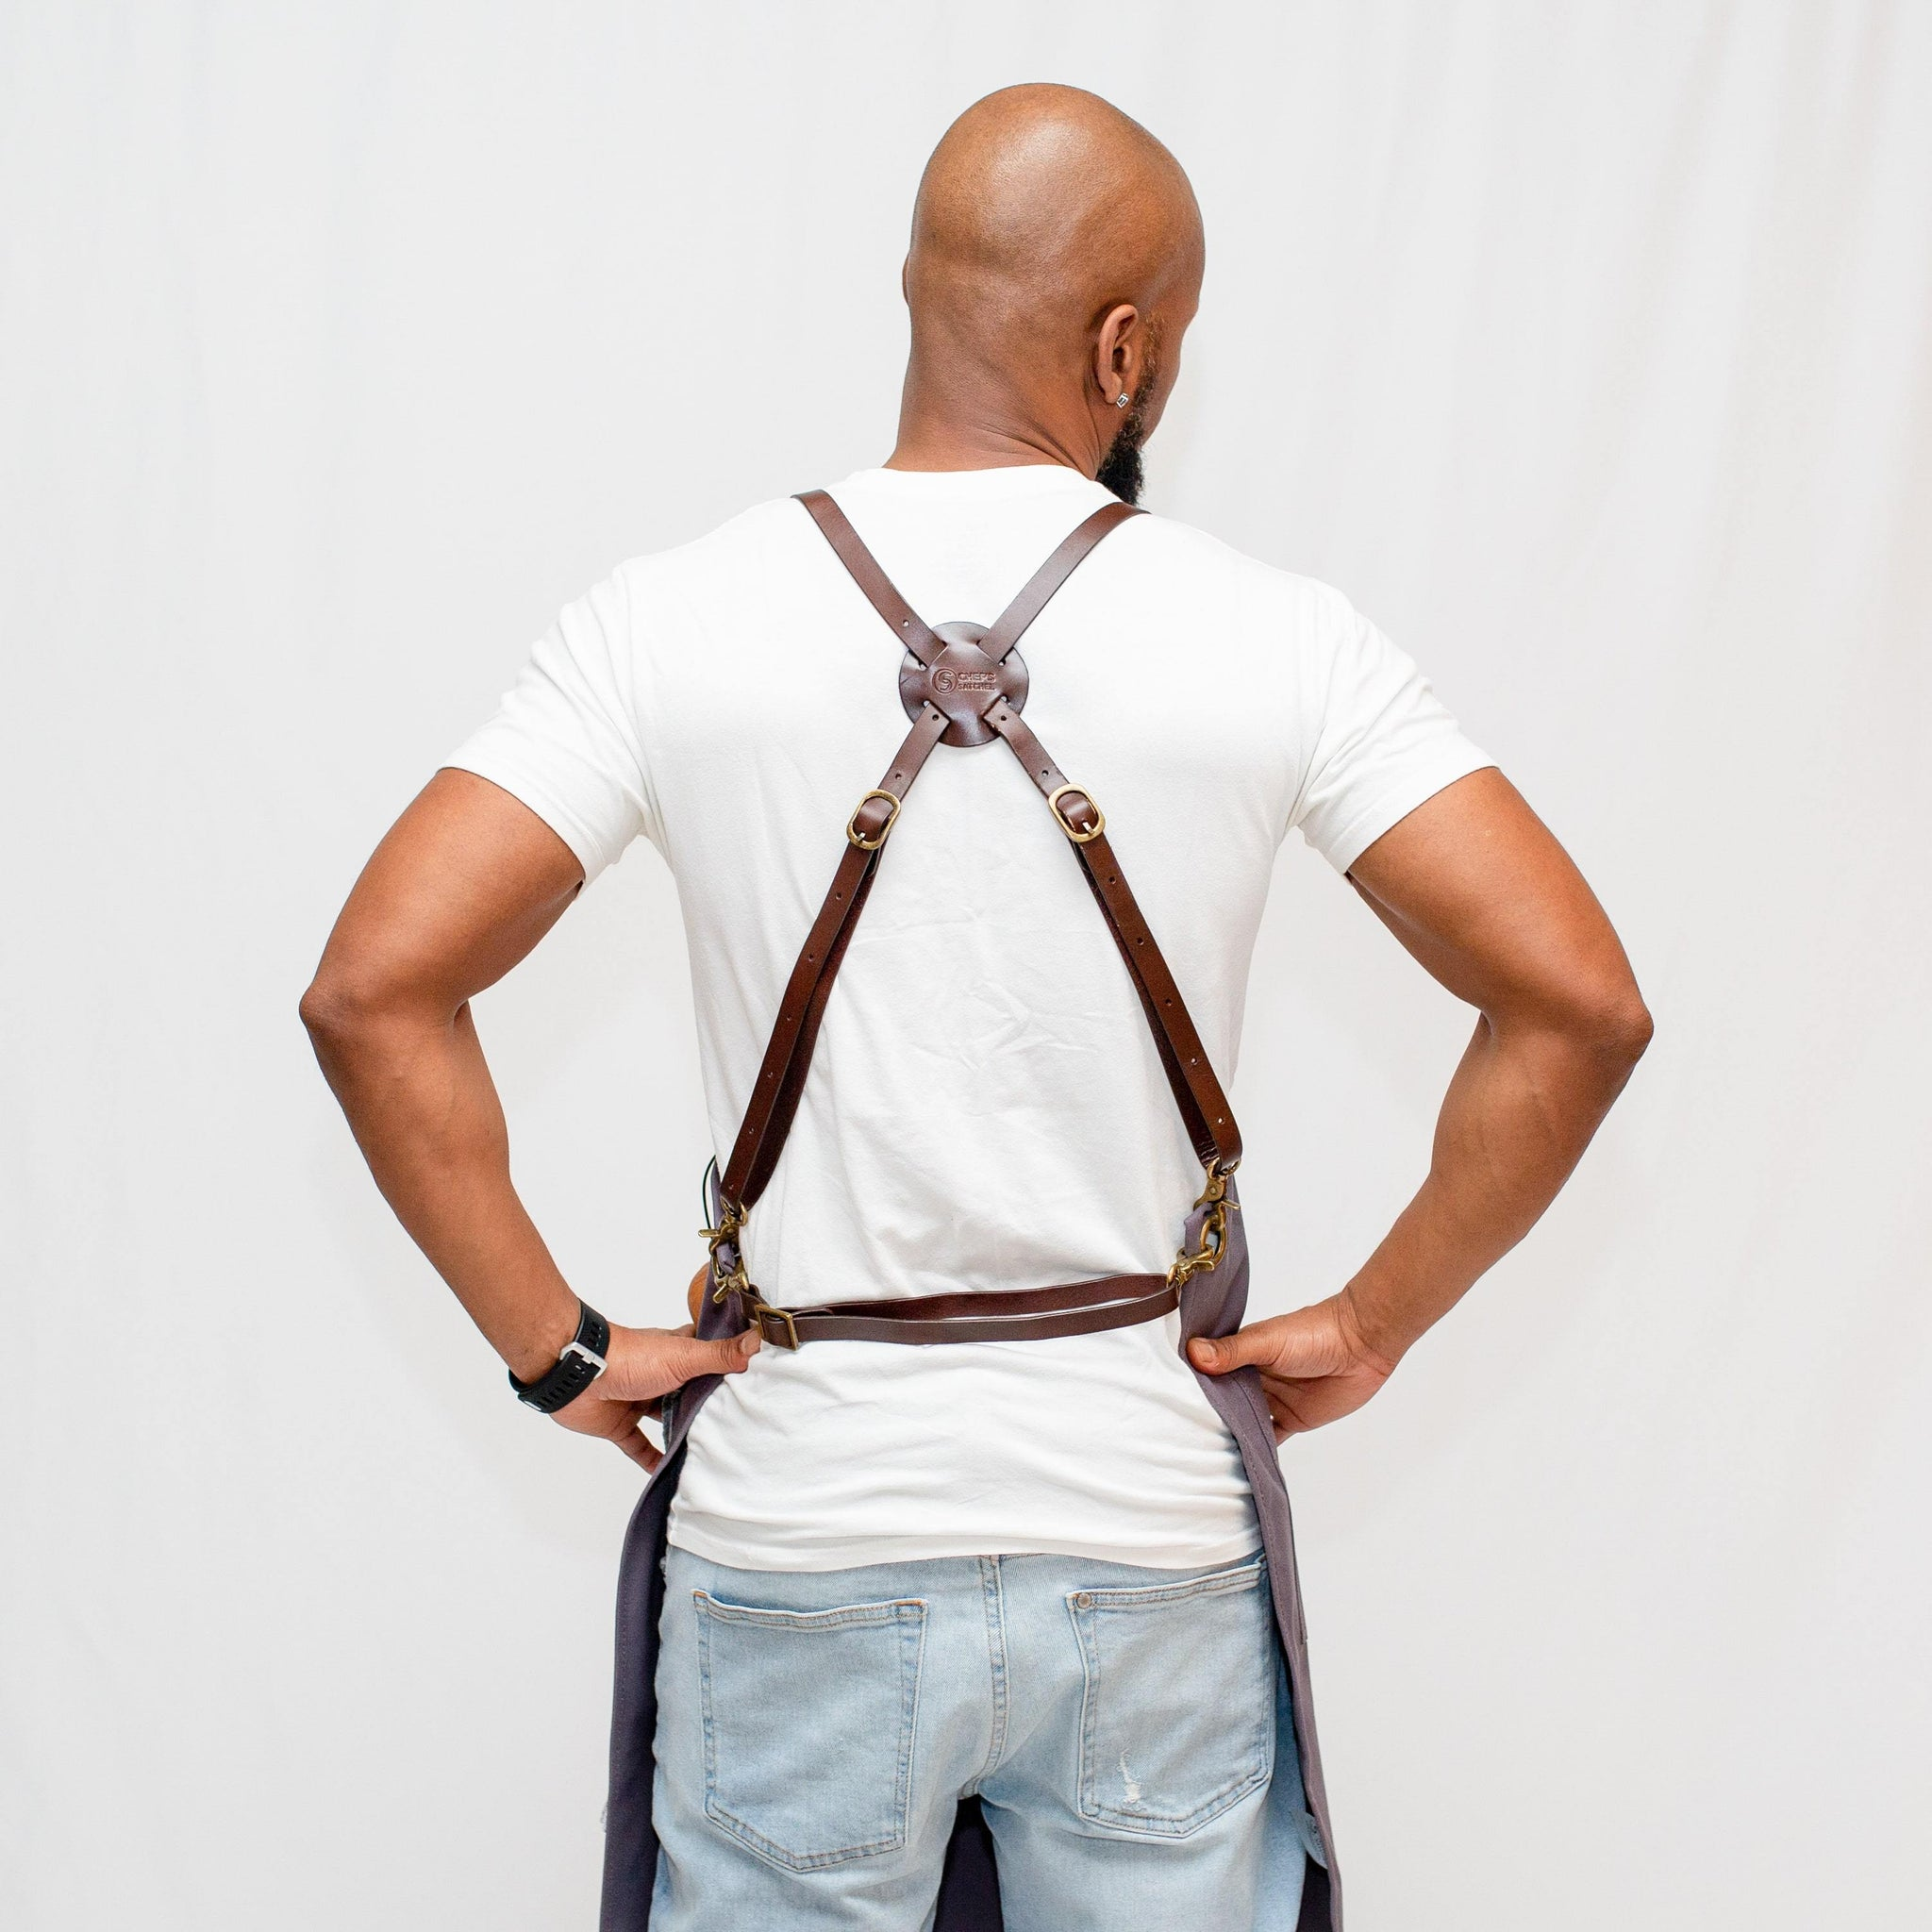 Leather Strap Waxed Canvas Aprons for wholesale pricing